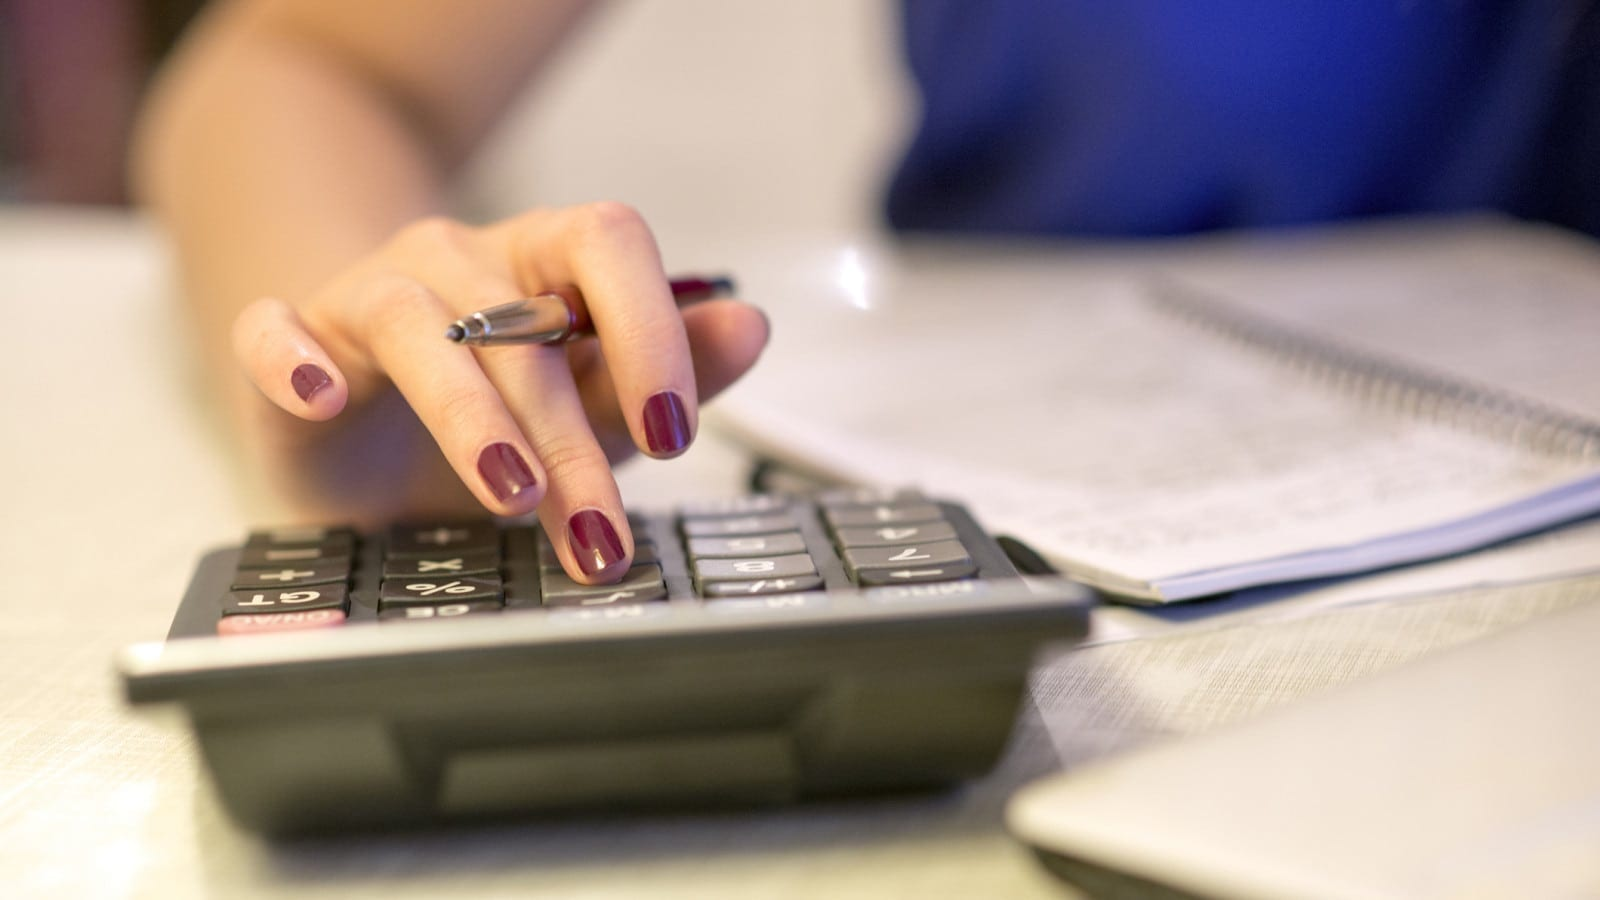 Woman Using A Calculator At Her Desk Stock Photo